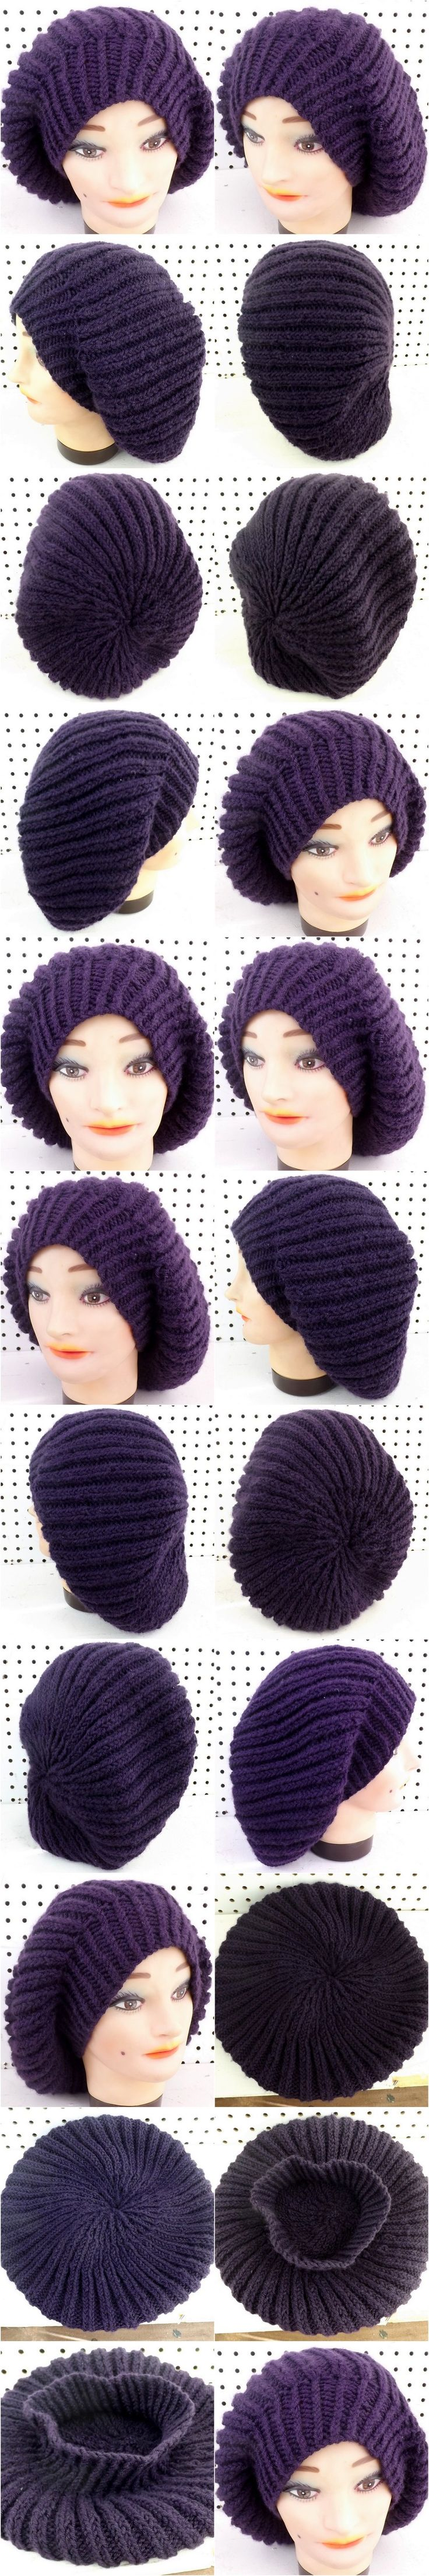 https://www.etsy.com/listing/161701053/knit-pattern-mary-knit-beret-hat-pattern?ref=listing-shop-header-3 MARY Knit Slouchy Beret Hat Pattern #crochet #berethat